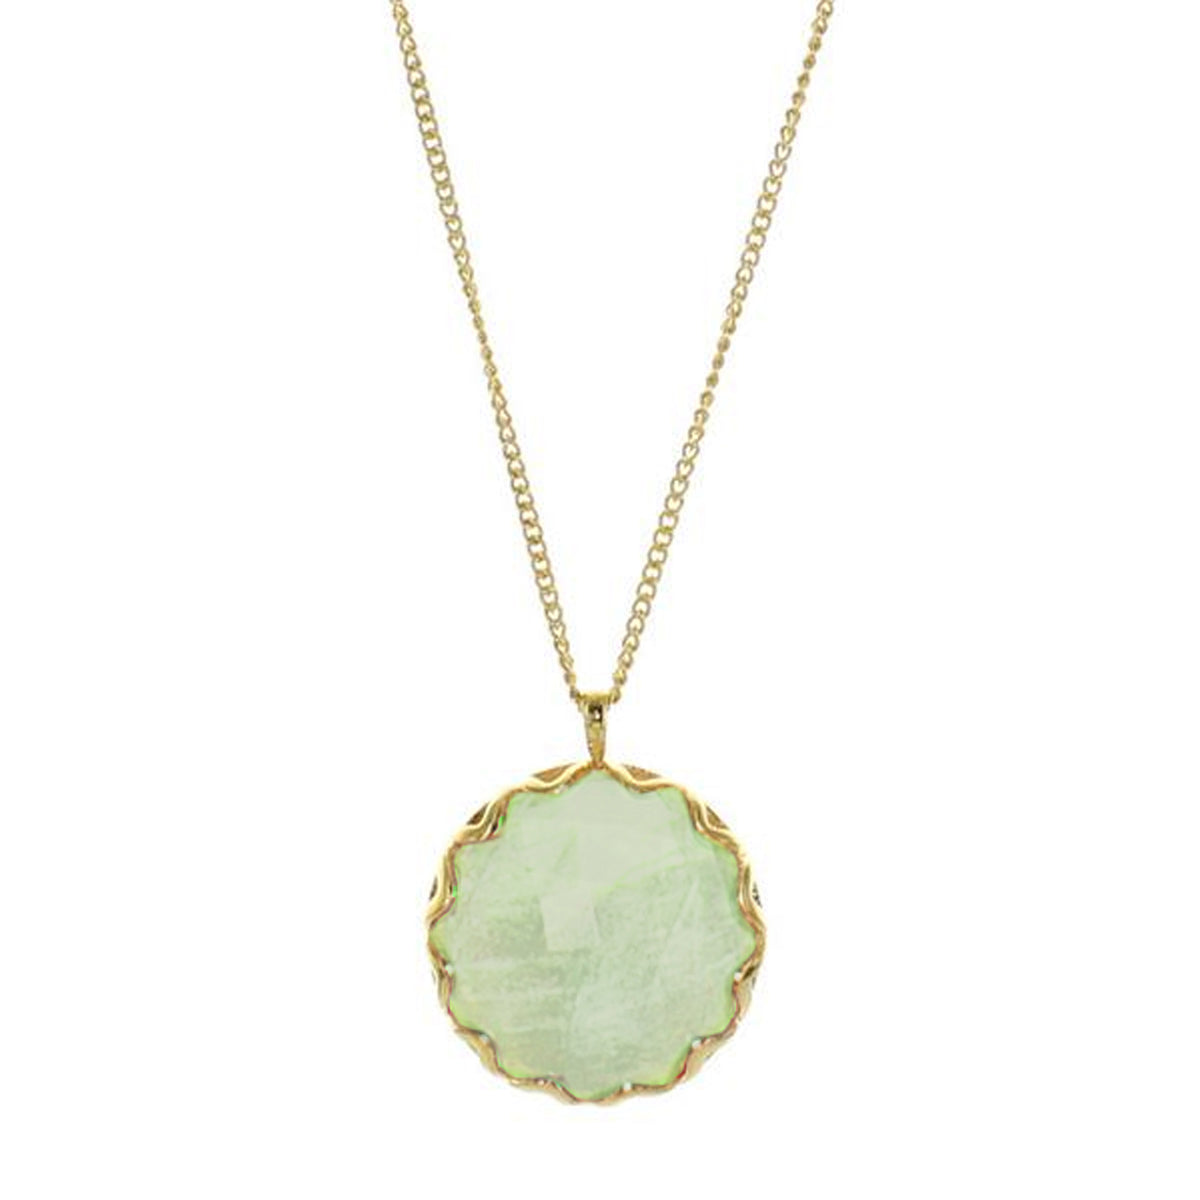 FEARLESS NECKLACE - MINT PREHNITE & GOLD